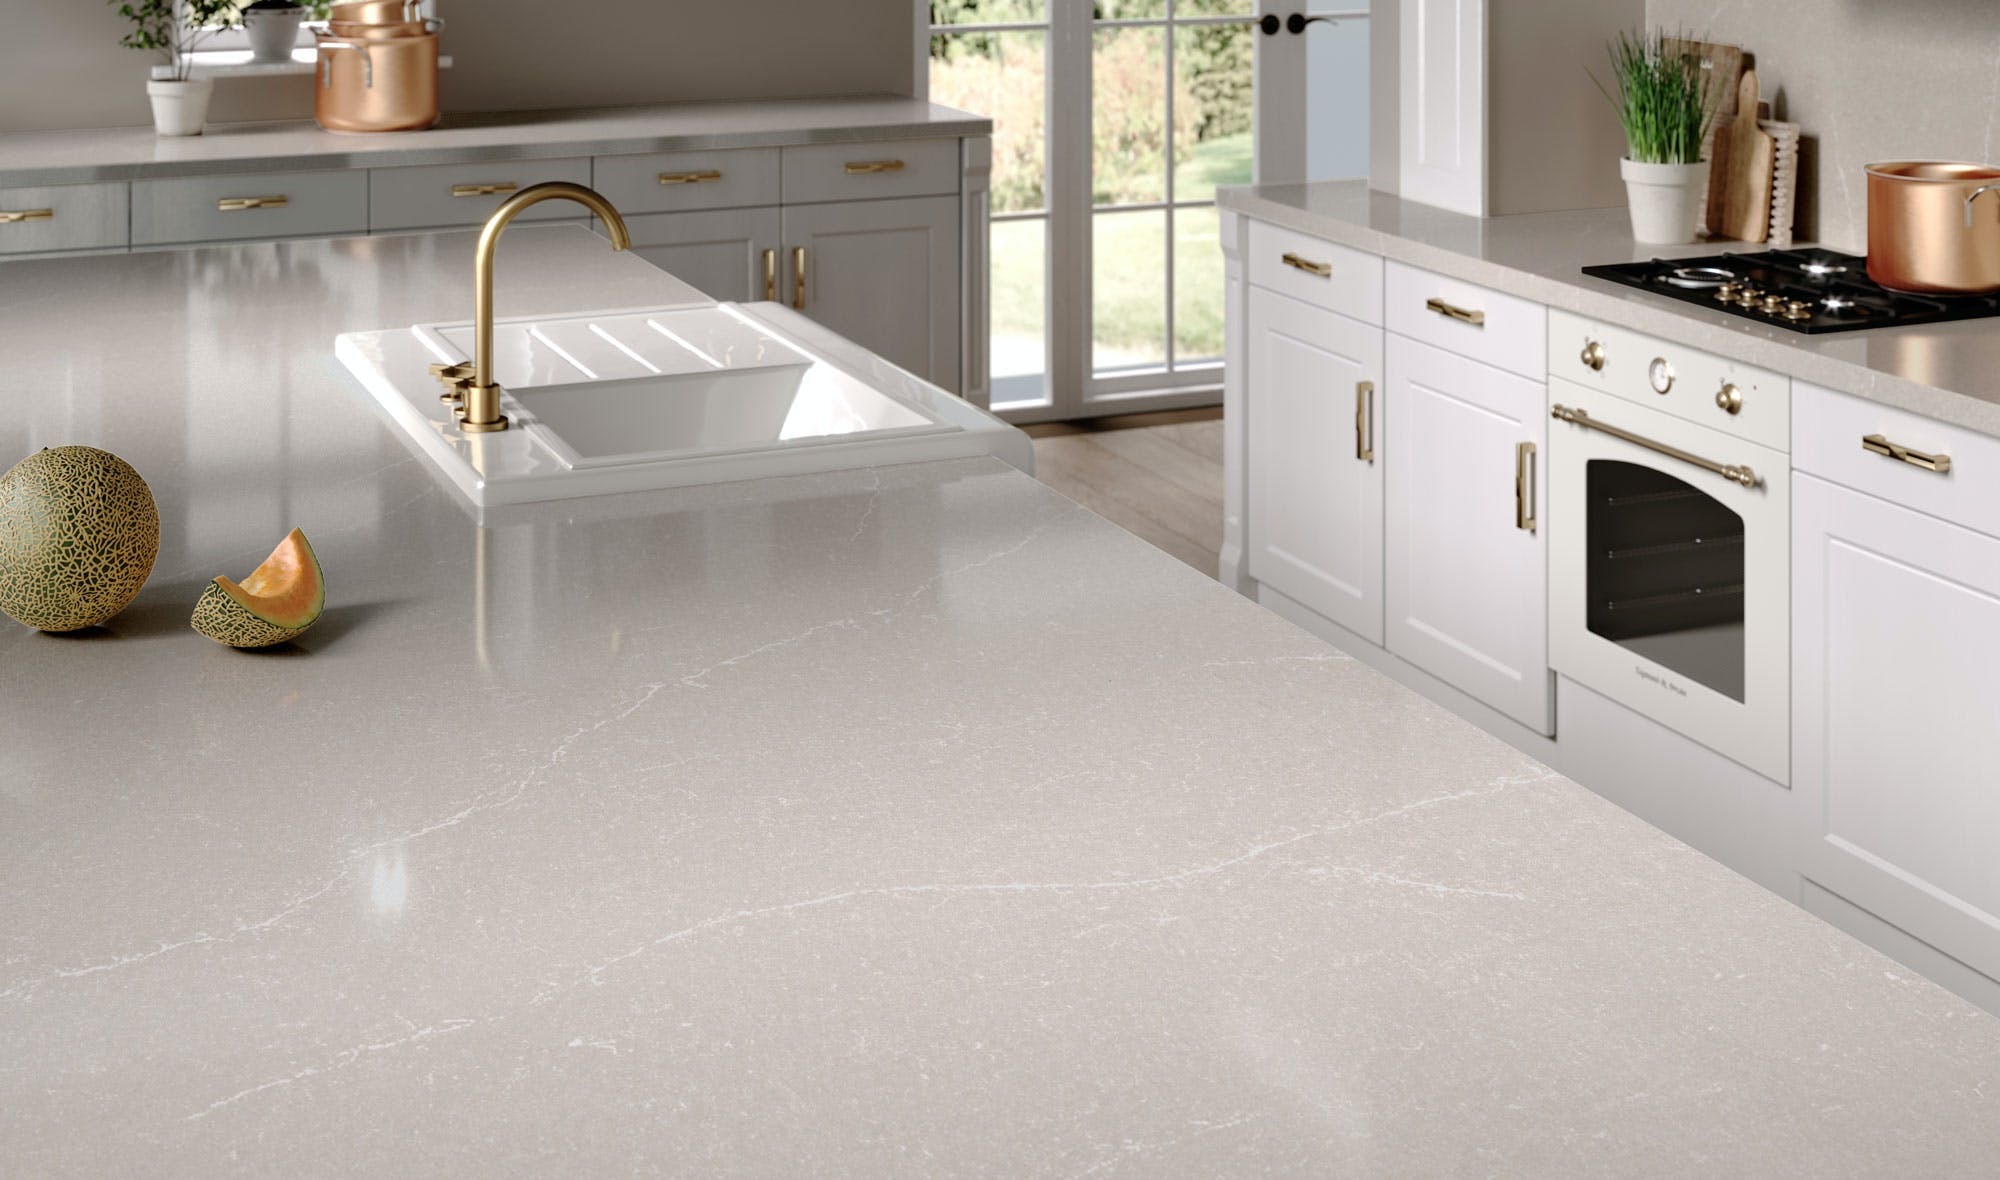 Silestone-Kitchen-HD-Desert-Silver